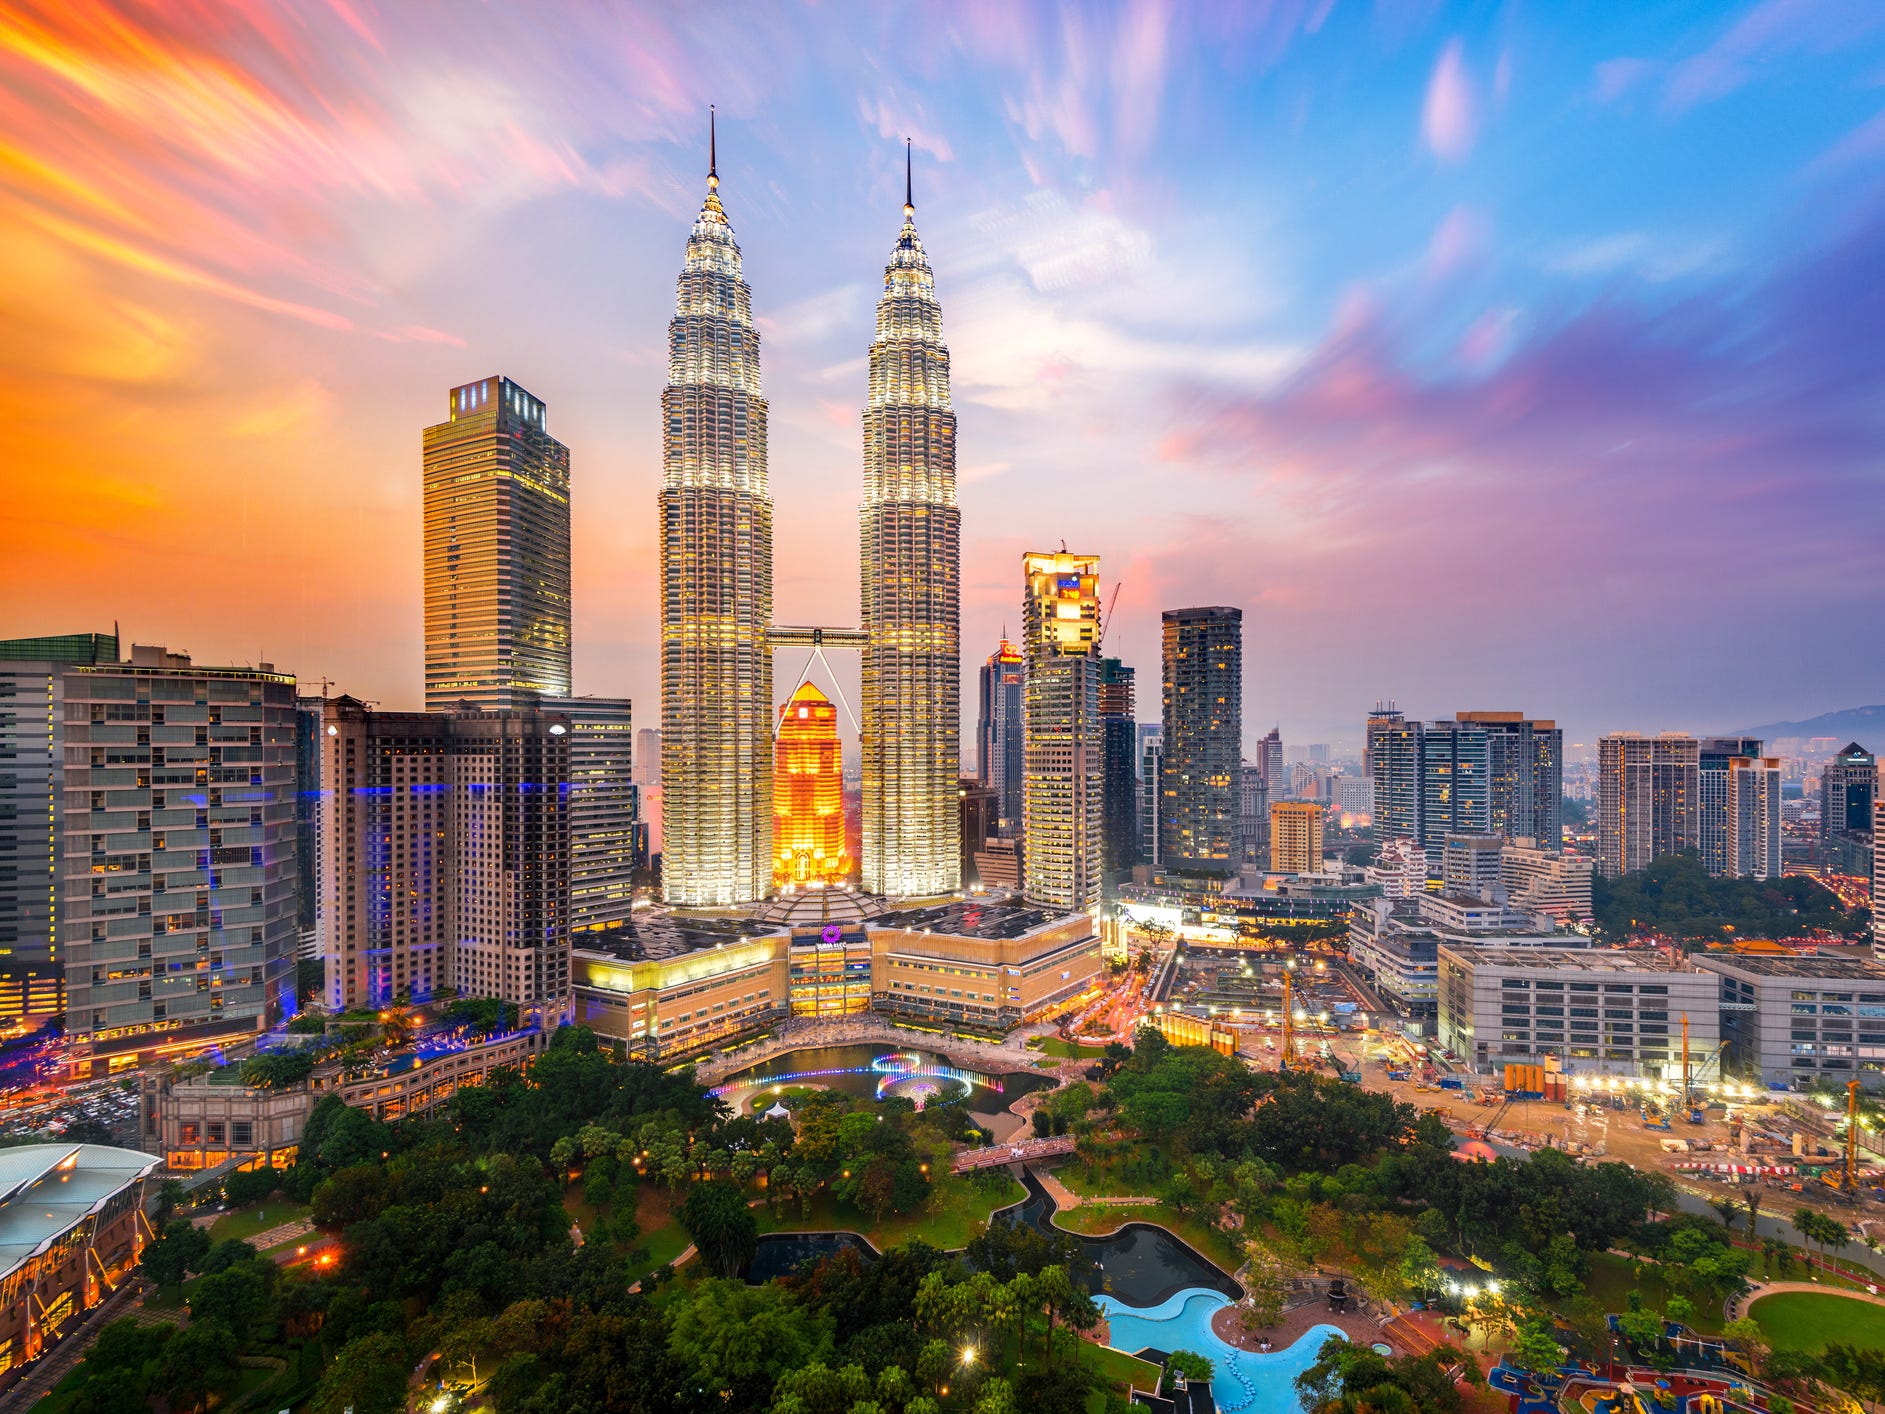 Kuala Lumpur, Malaysia: Kuala Lumpur and other parts of Malaysia offer an exotic vacation destination with a not-so-exotic price tag. You can stay at luxe hotels for under $200 a night — and at three- or four-stars for even less. Currently, one Malaysian ringgit is equal to 24 U.S. cents, which means your dollar will go a long way when it comes to meals and activities, too. And in many cases, you won't even need to pull out your wallet — admission-free museums, walking tours, religious sites, and parks make it easy to save.